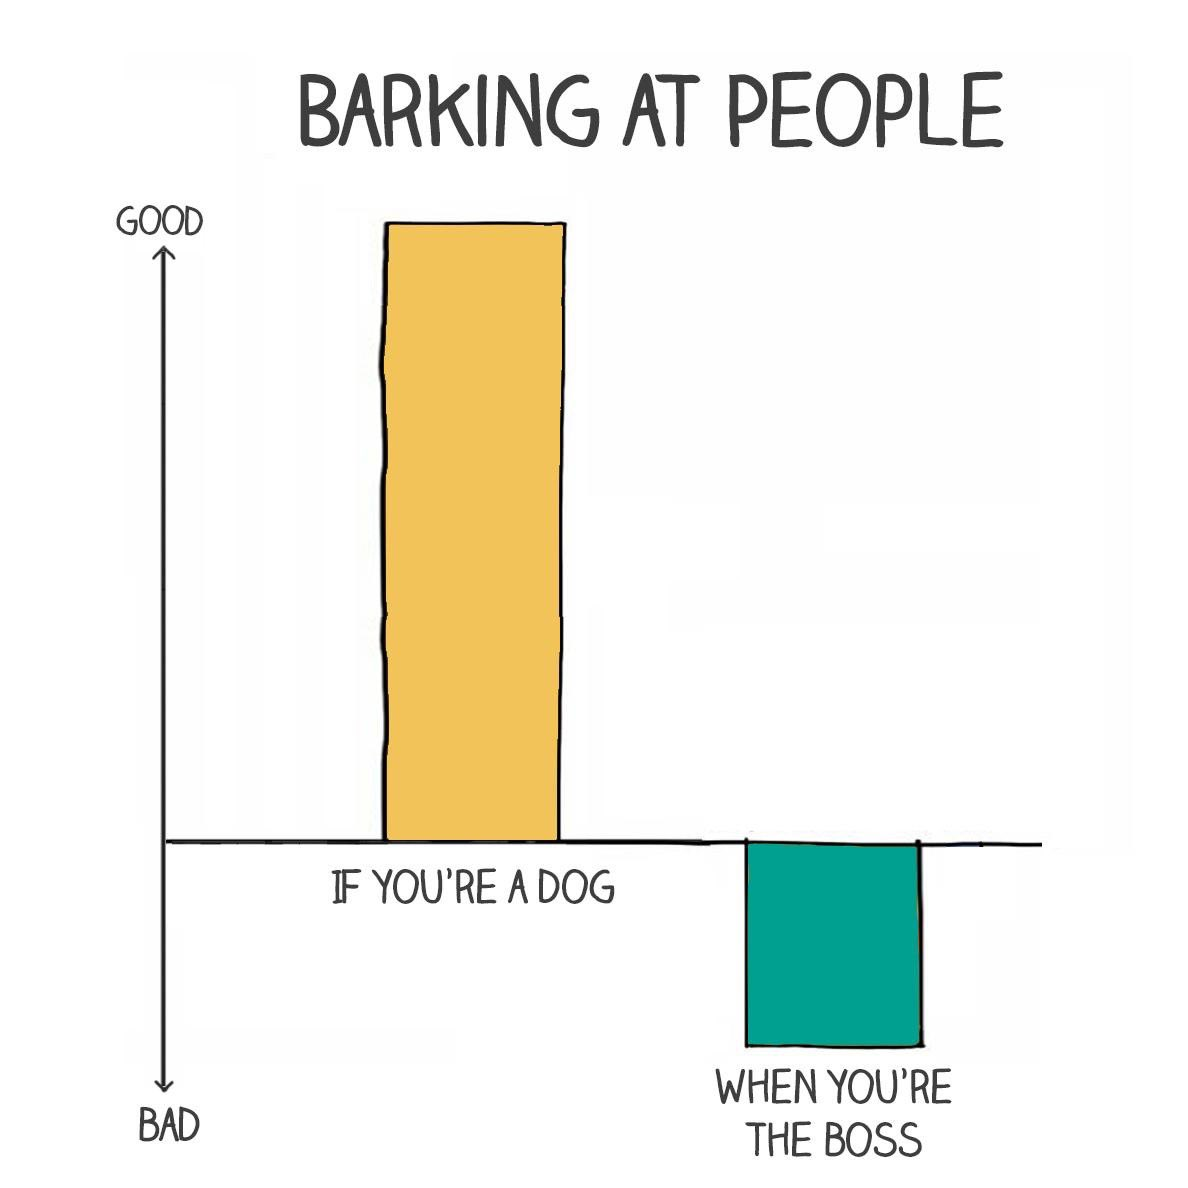 When is it good or bad barking at people? #leadership #personality #mindfulatwork #cultureofhealth https://t.co/Y1DAnY22tC